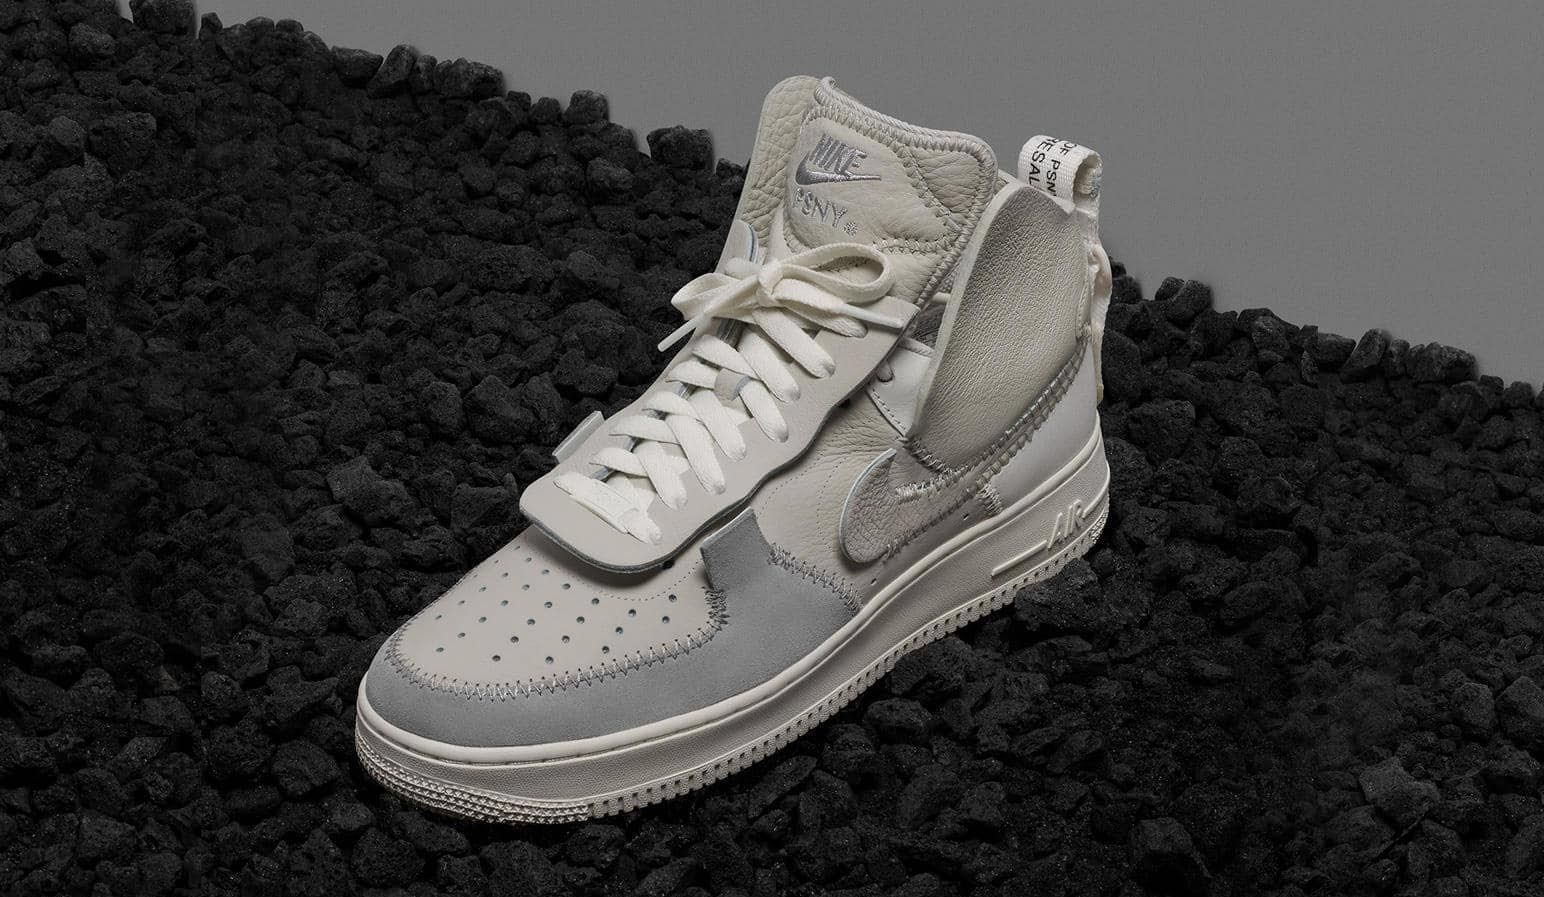 low priced 80e95 9c61d PSNY x Nike Air Force 1 High (Grey), Men s Fashion, Footwear, Sneakers on  Carousell